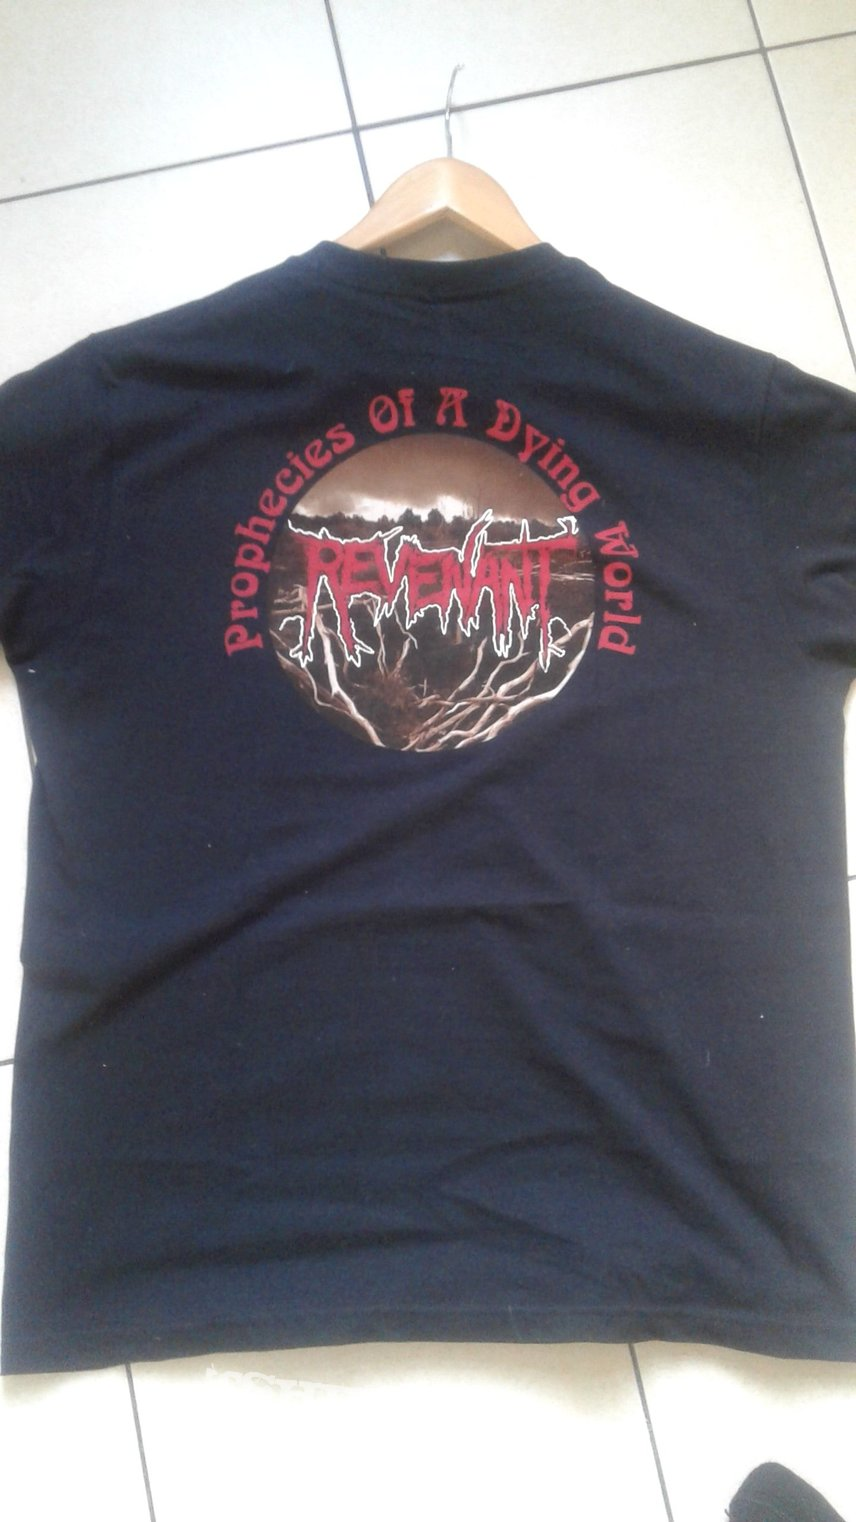 Revenant - Prophecies of a Dying World shirt